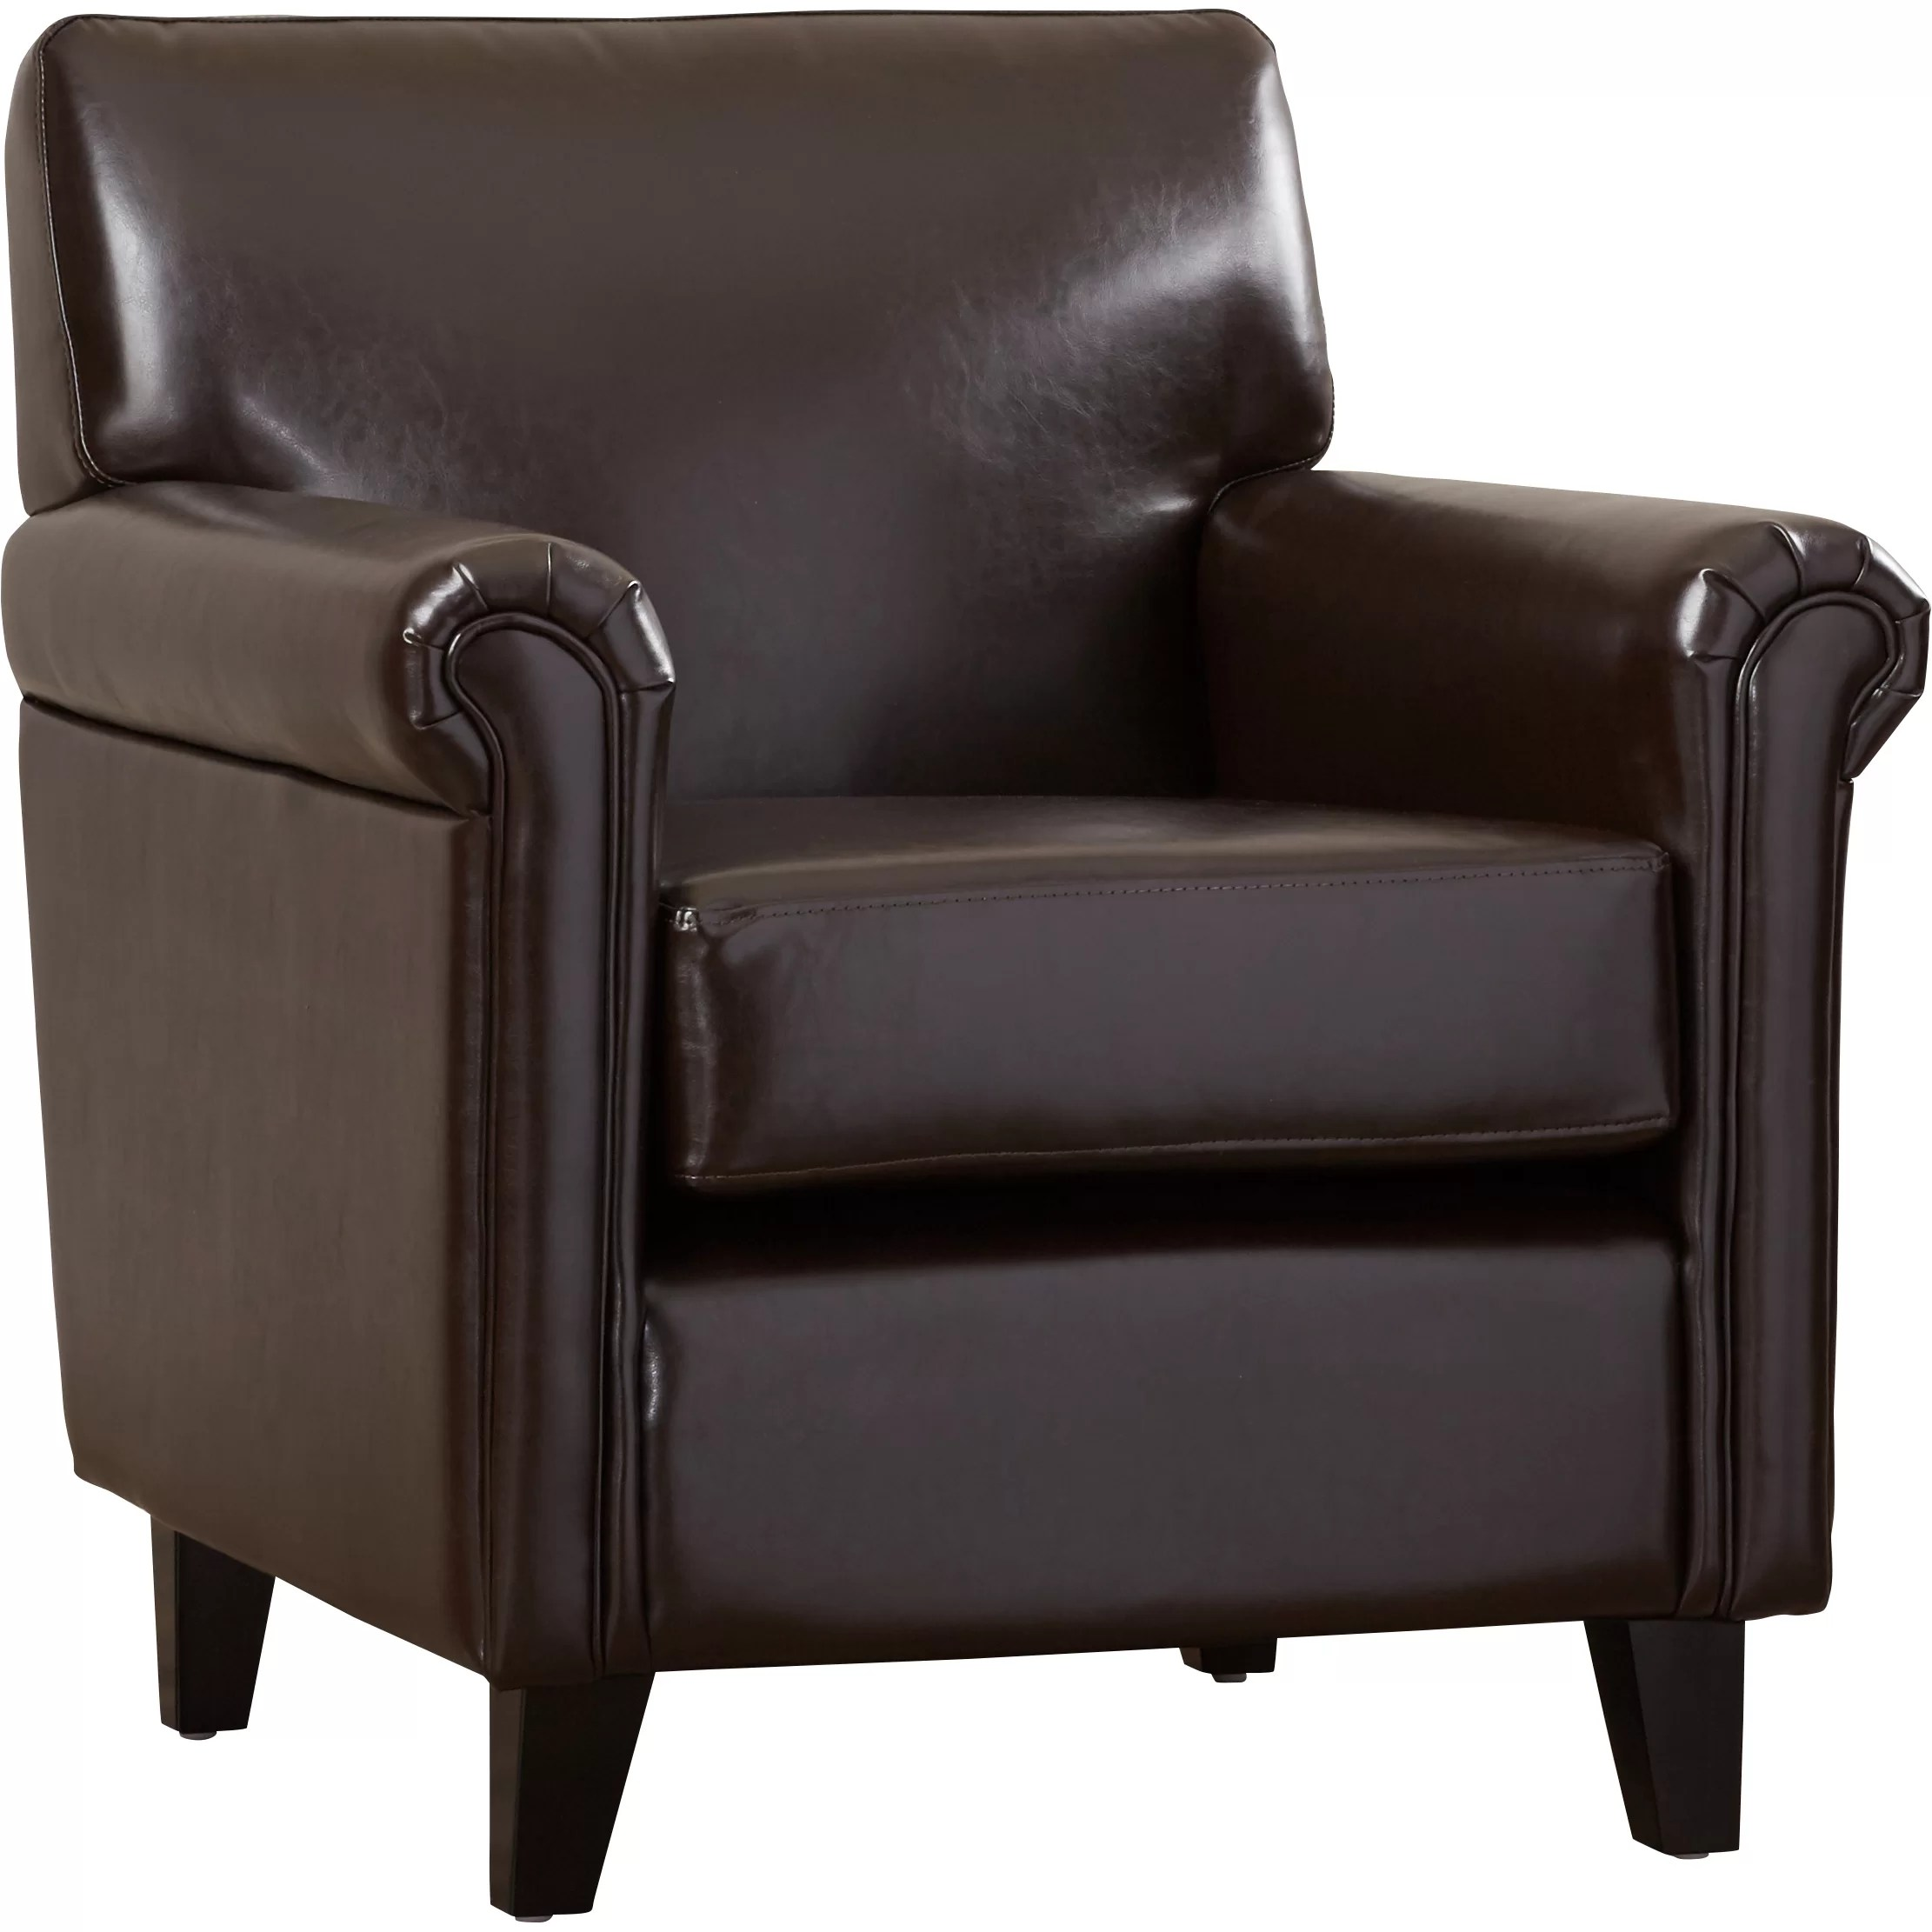 Armed Accent Chairs Three Posts Horsham Upholstered Arm Chair And Reviews Wayfair